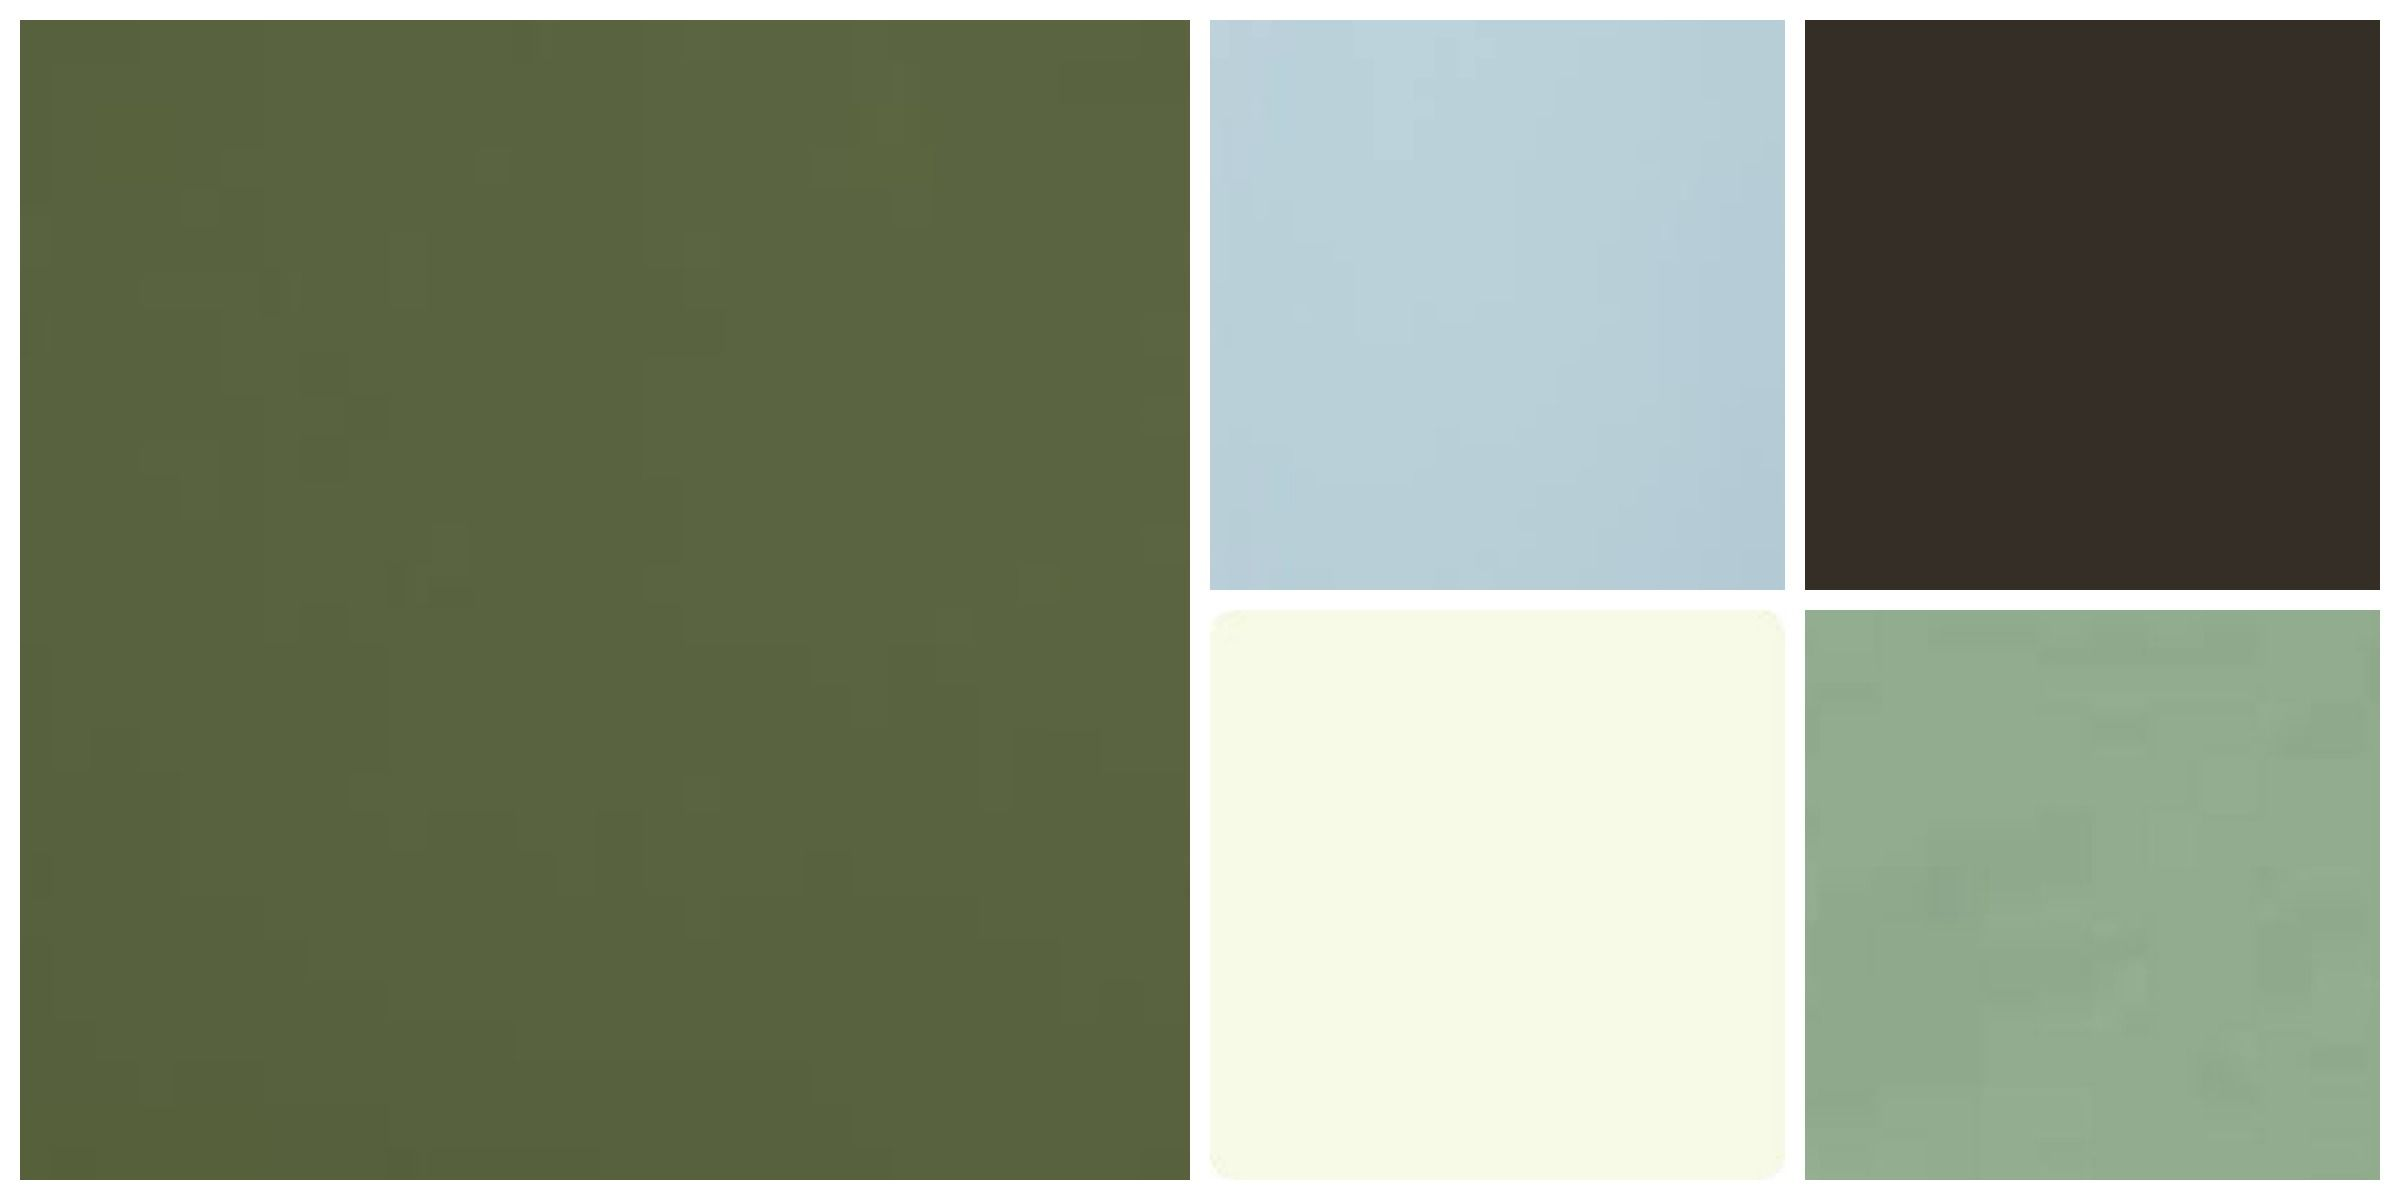 Sage colored house clipart image transparent library my color palette!!! Army green, sage green, light cream ... image transparent library